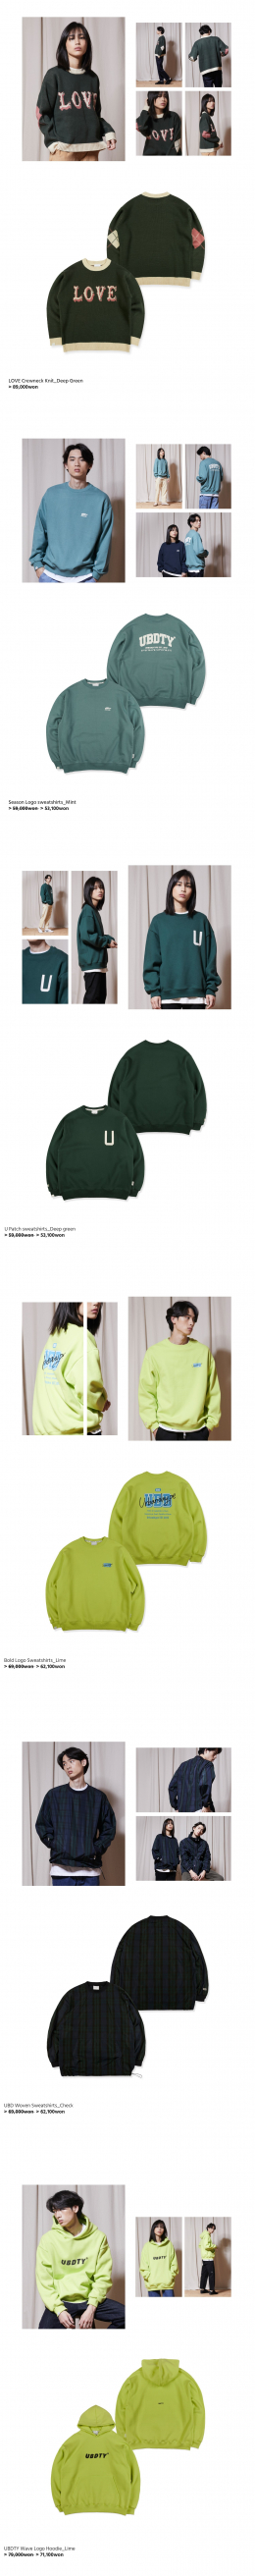 19FW ′피톤치드(Phytoncide)′ Collection 단독 발매